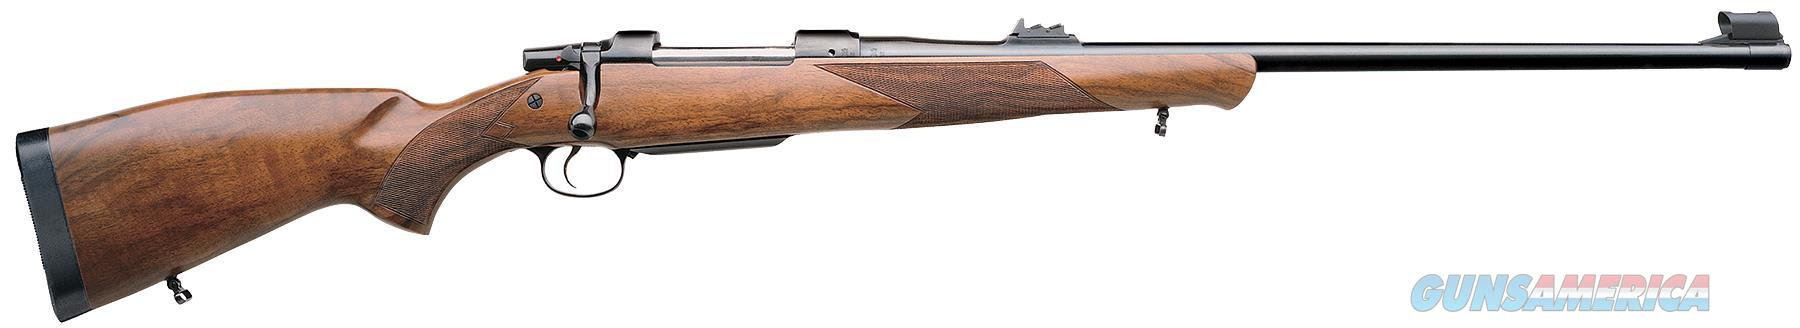 "Czusa 04202 Czusa 550 Safari Magnum Bolt 458 Winchester Magnum 25"" 5+1 Turkish Walnut Stk Blued 04202  Guns > Rifles > C Misc Rifles"